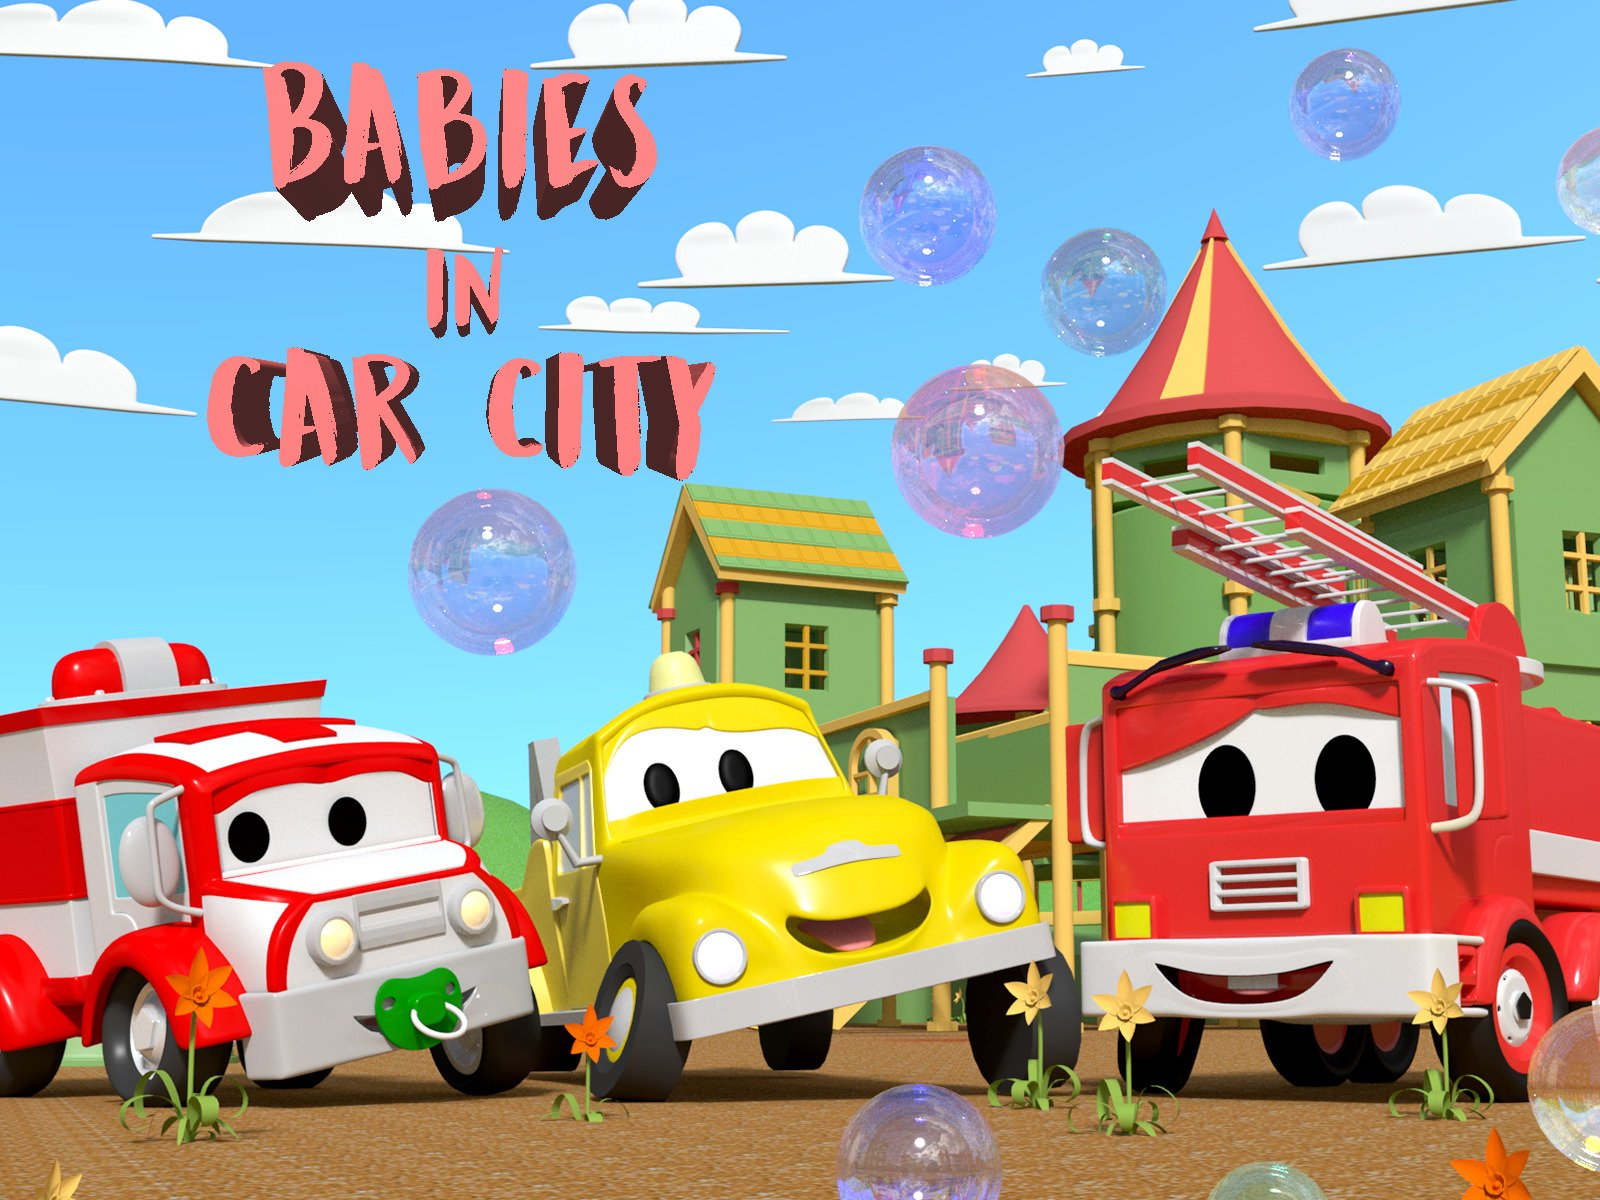 Babies in Car City - Season 1